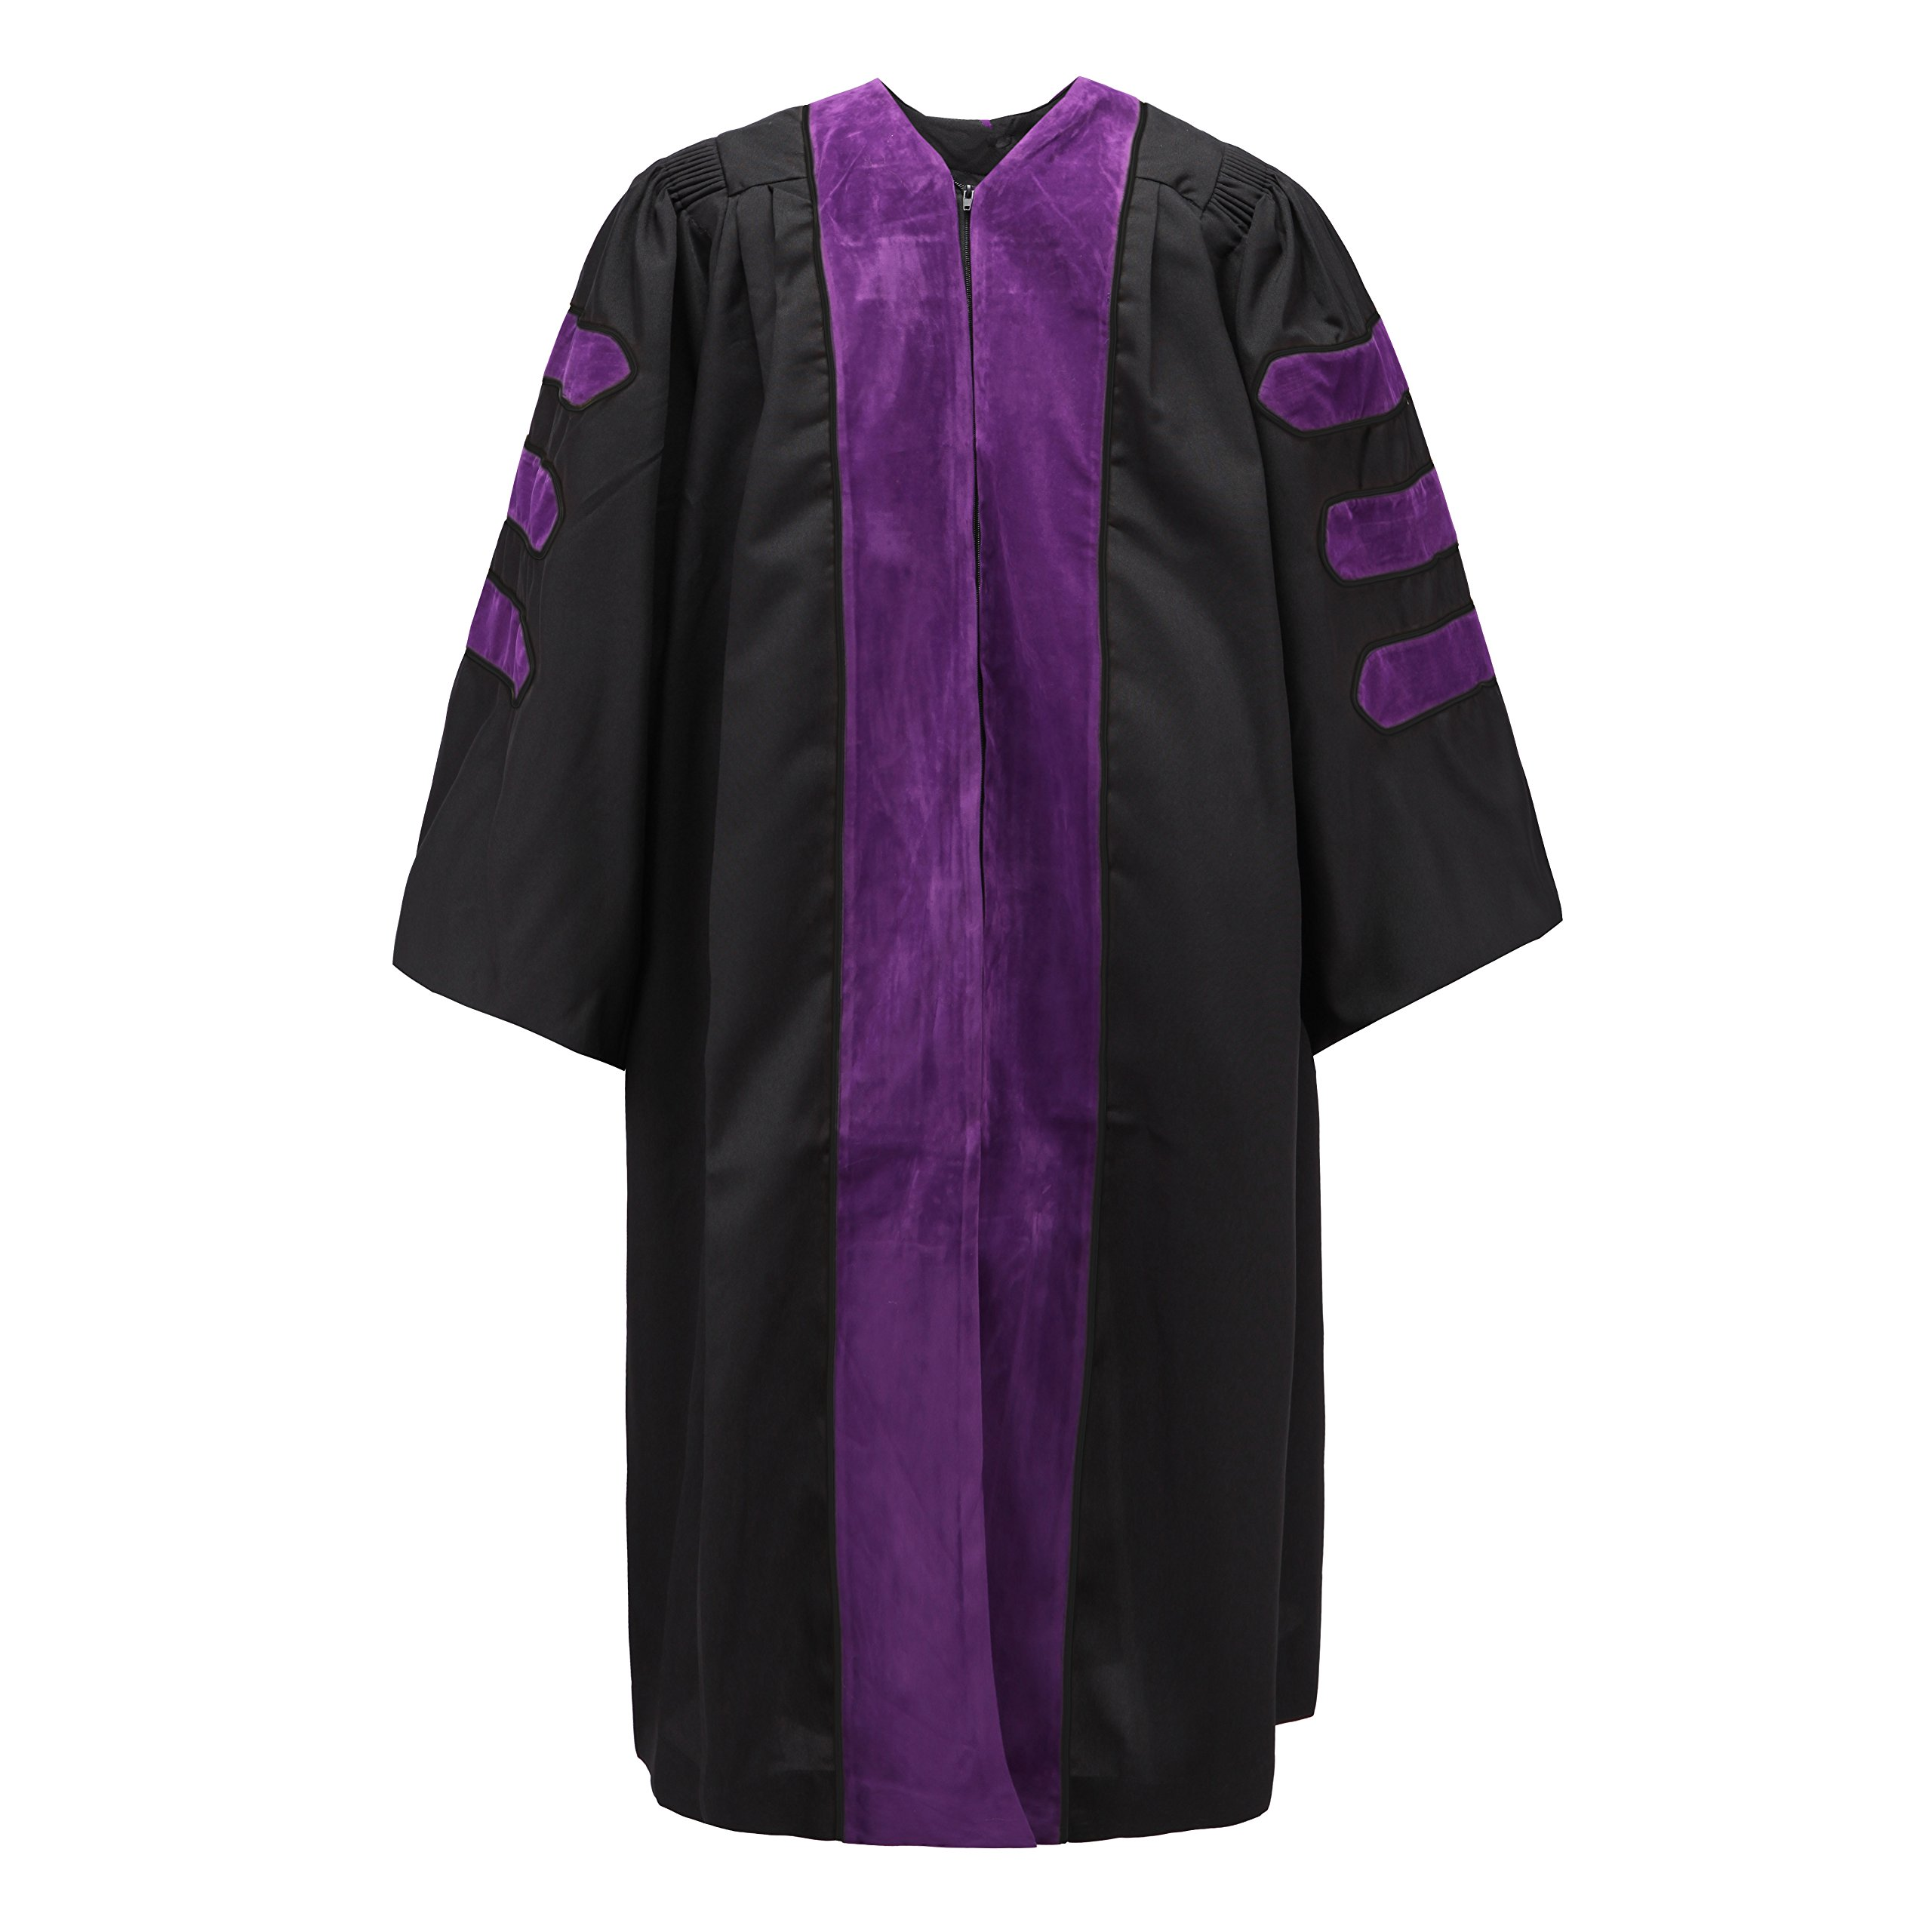 Robe Depot Unisex Deluxe Doctoral Graduation Gown Without Piping Purple Velvet,Size 51 by Robe Depot